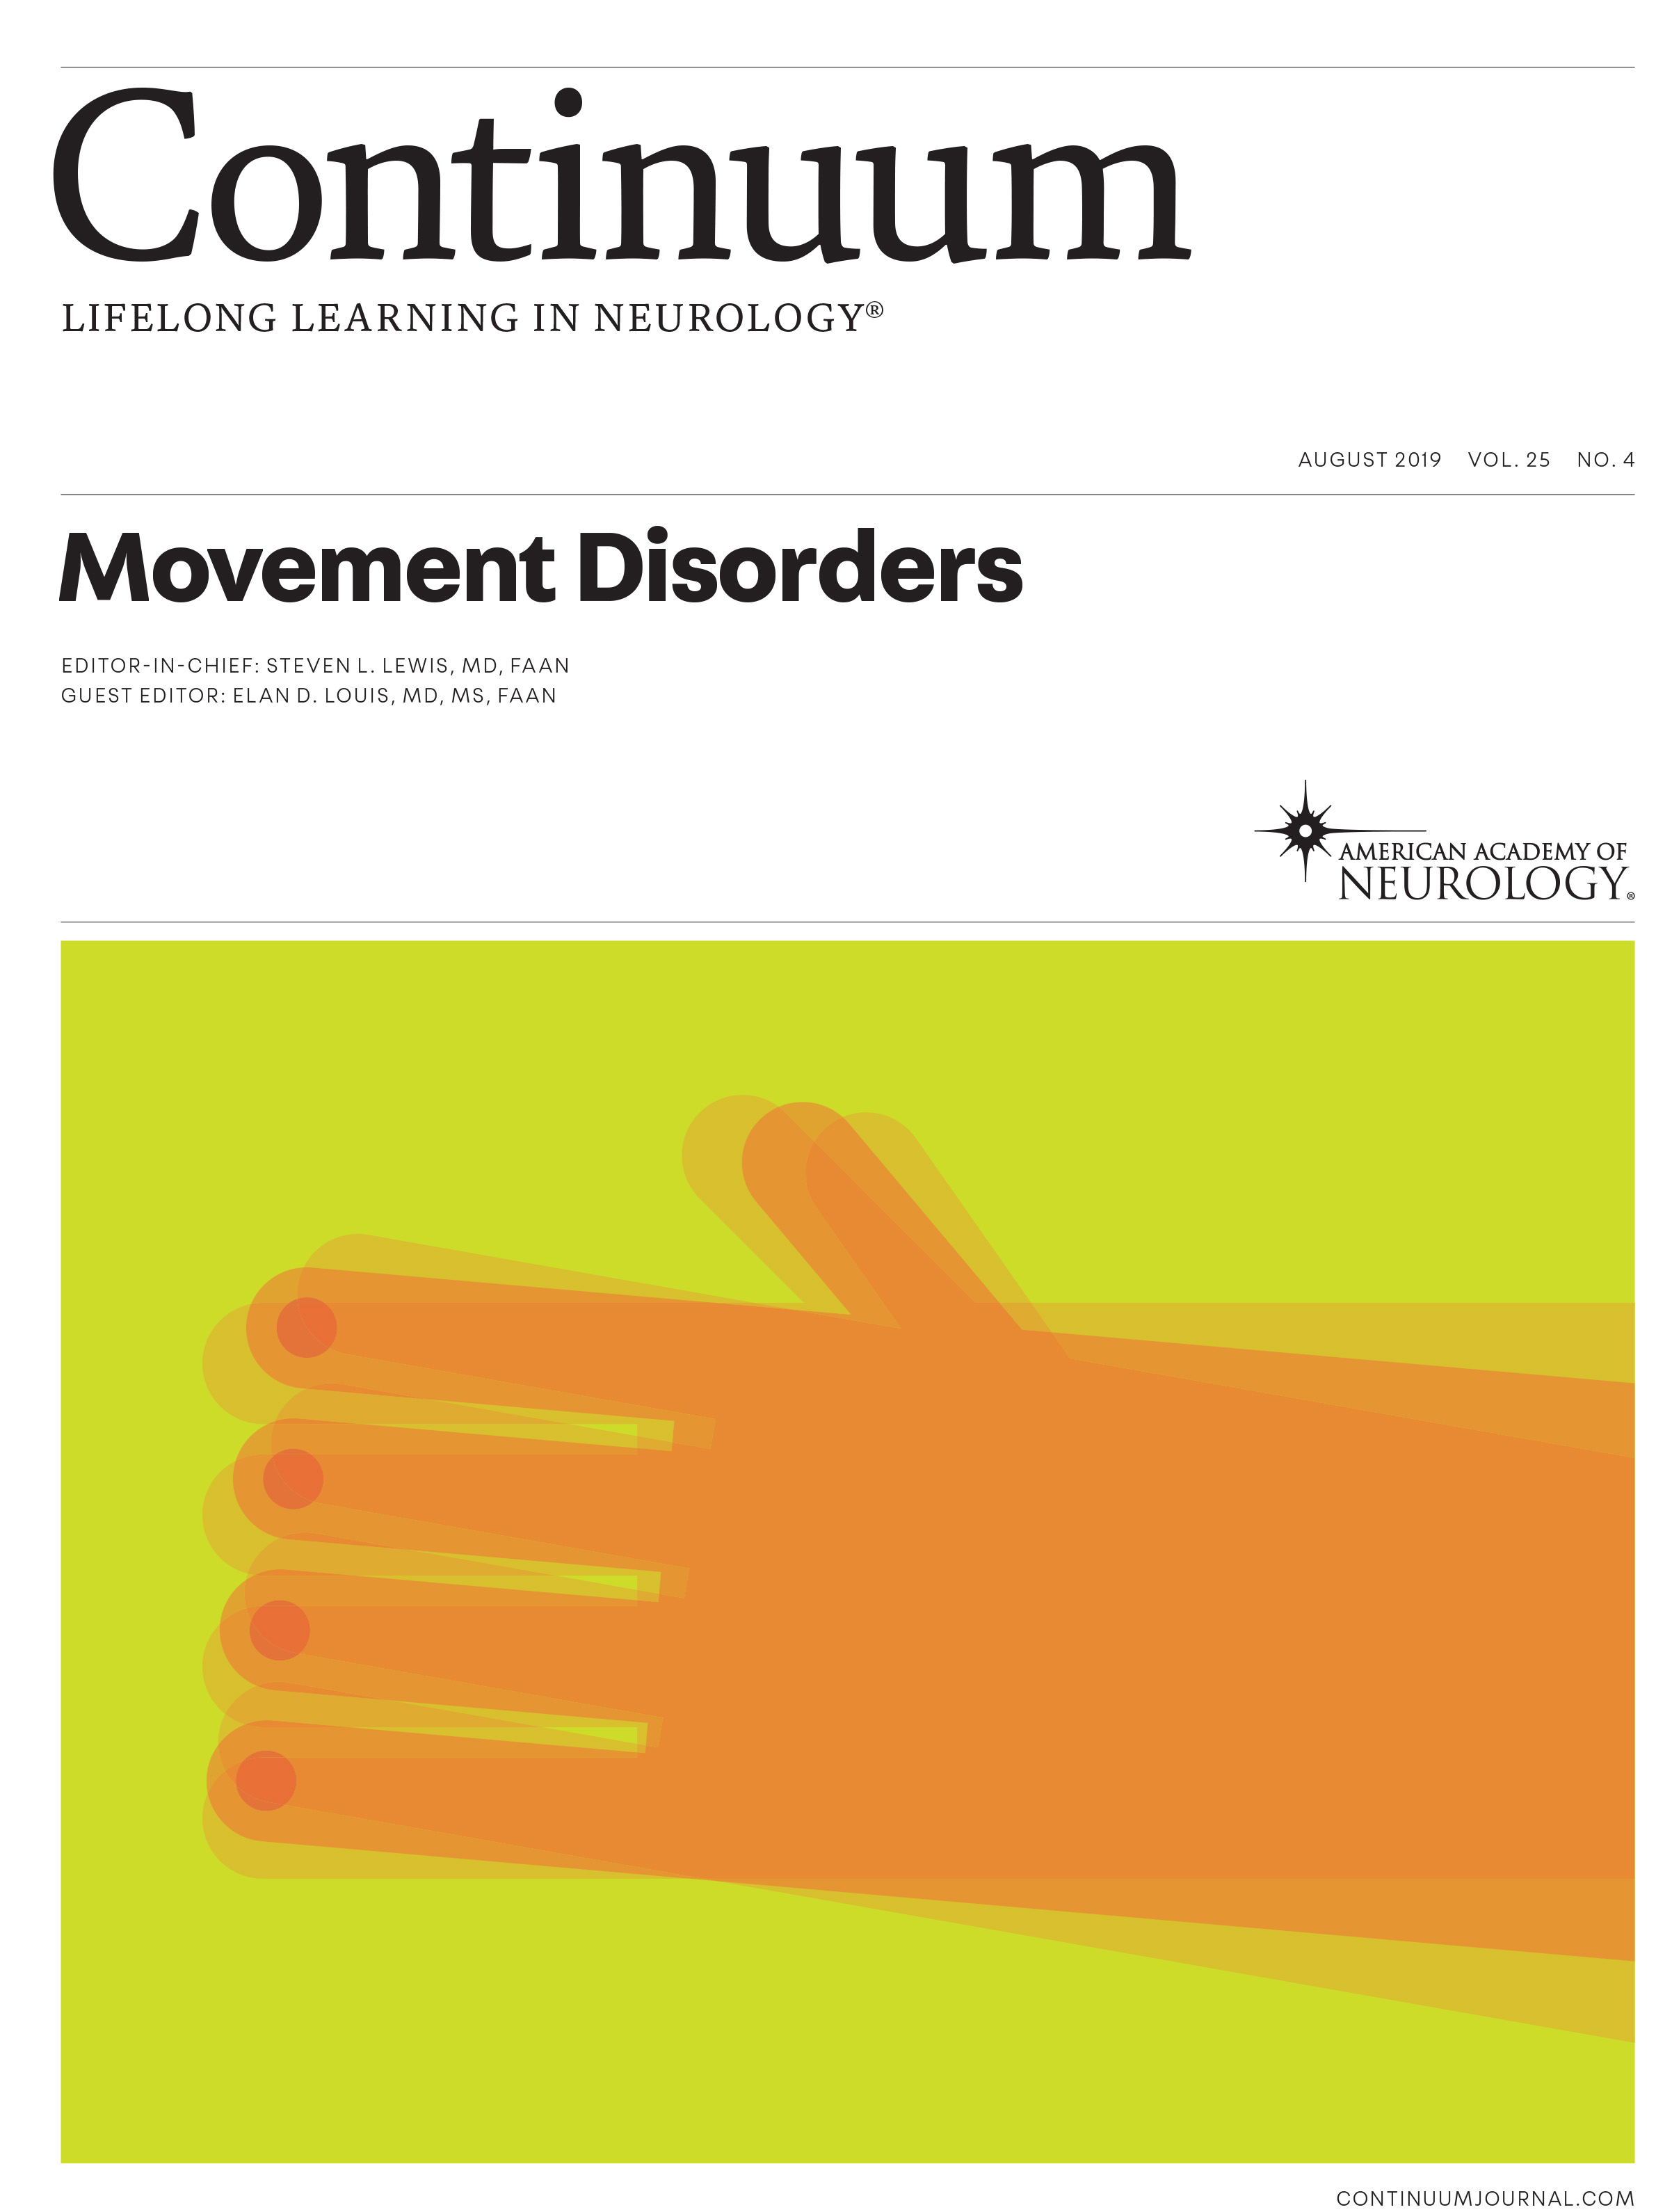 CONTINUUM: Lifelong Learning in Neurology